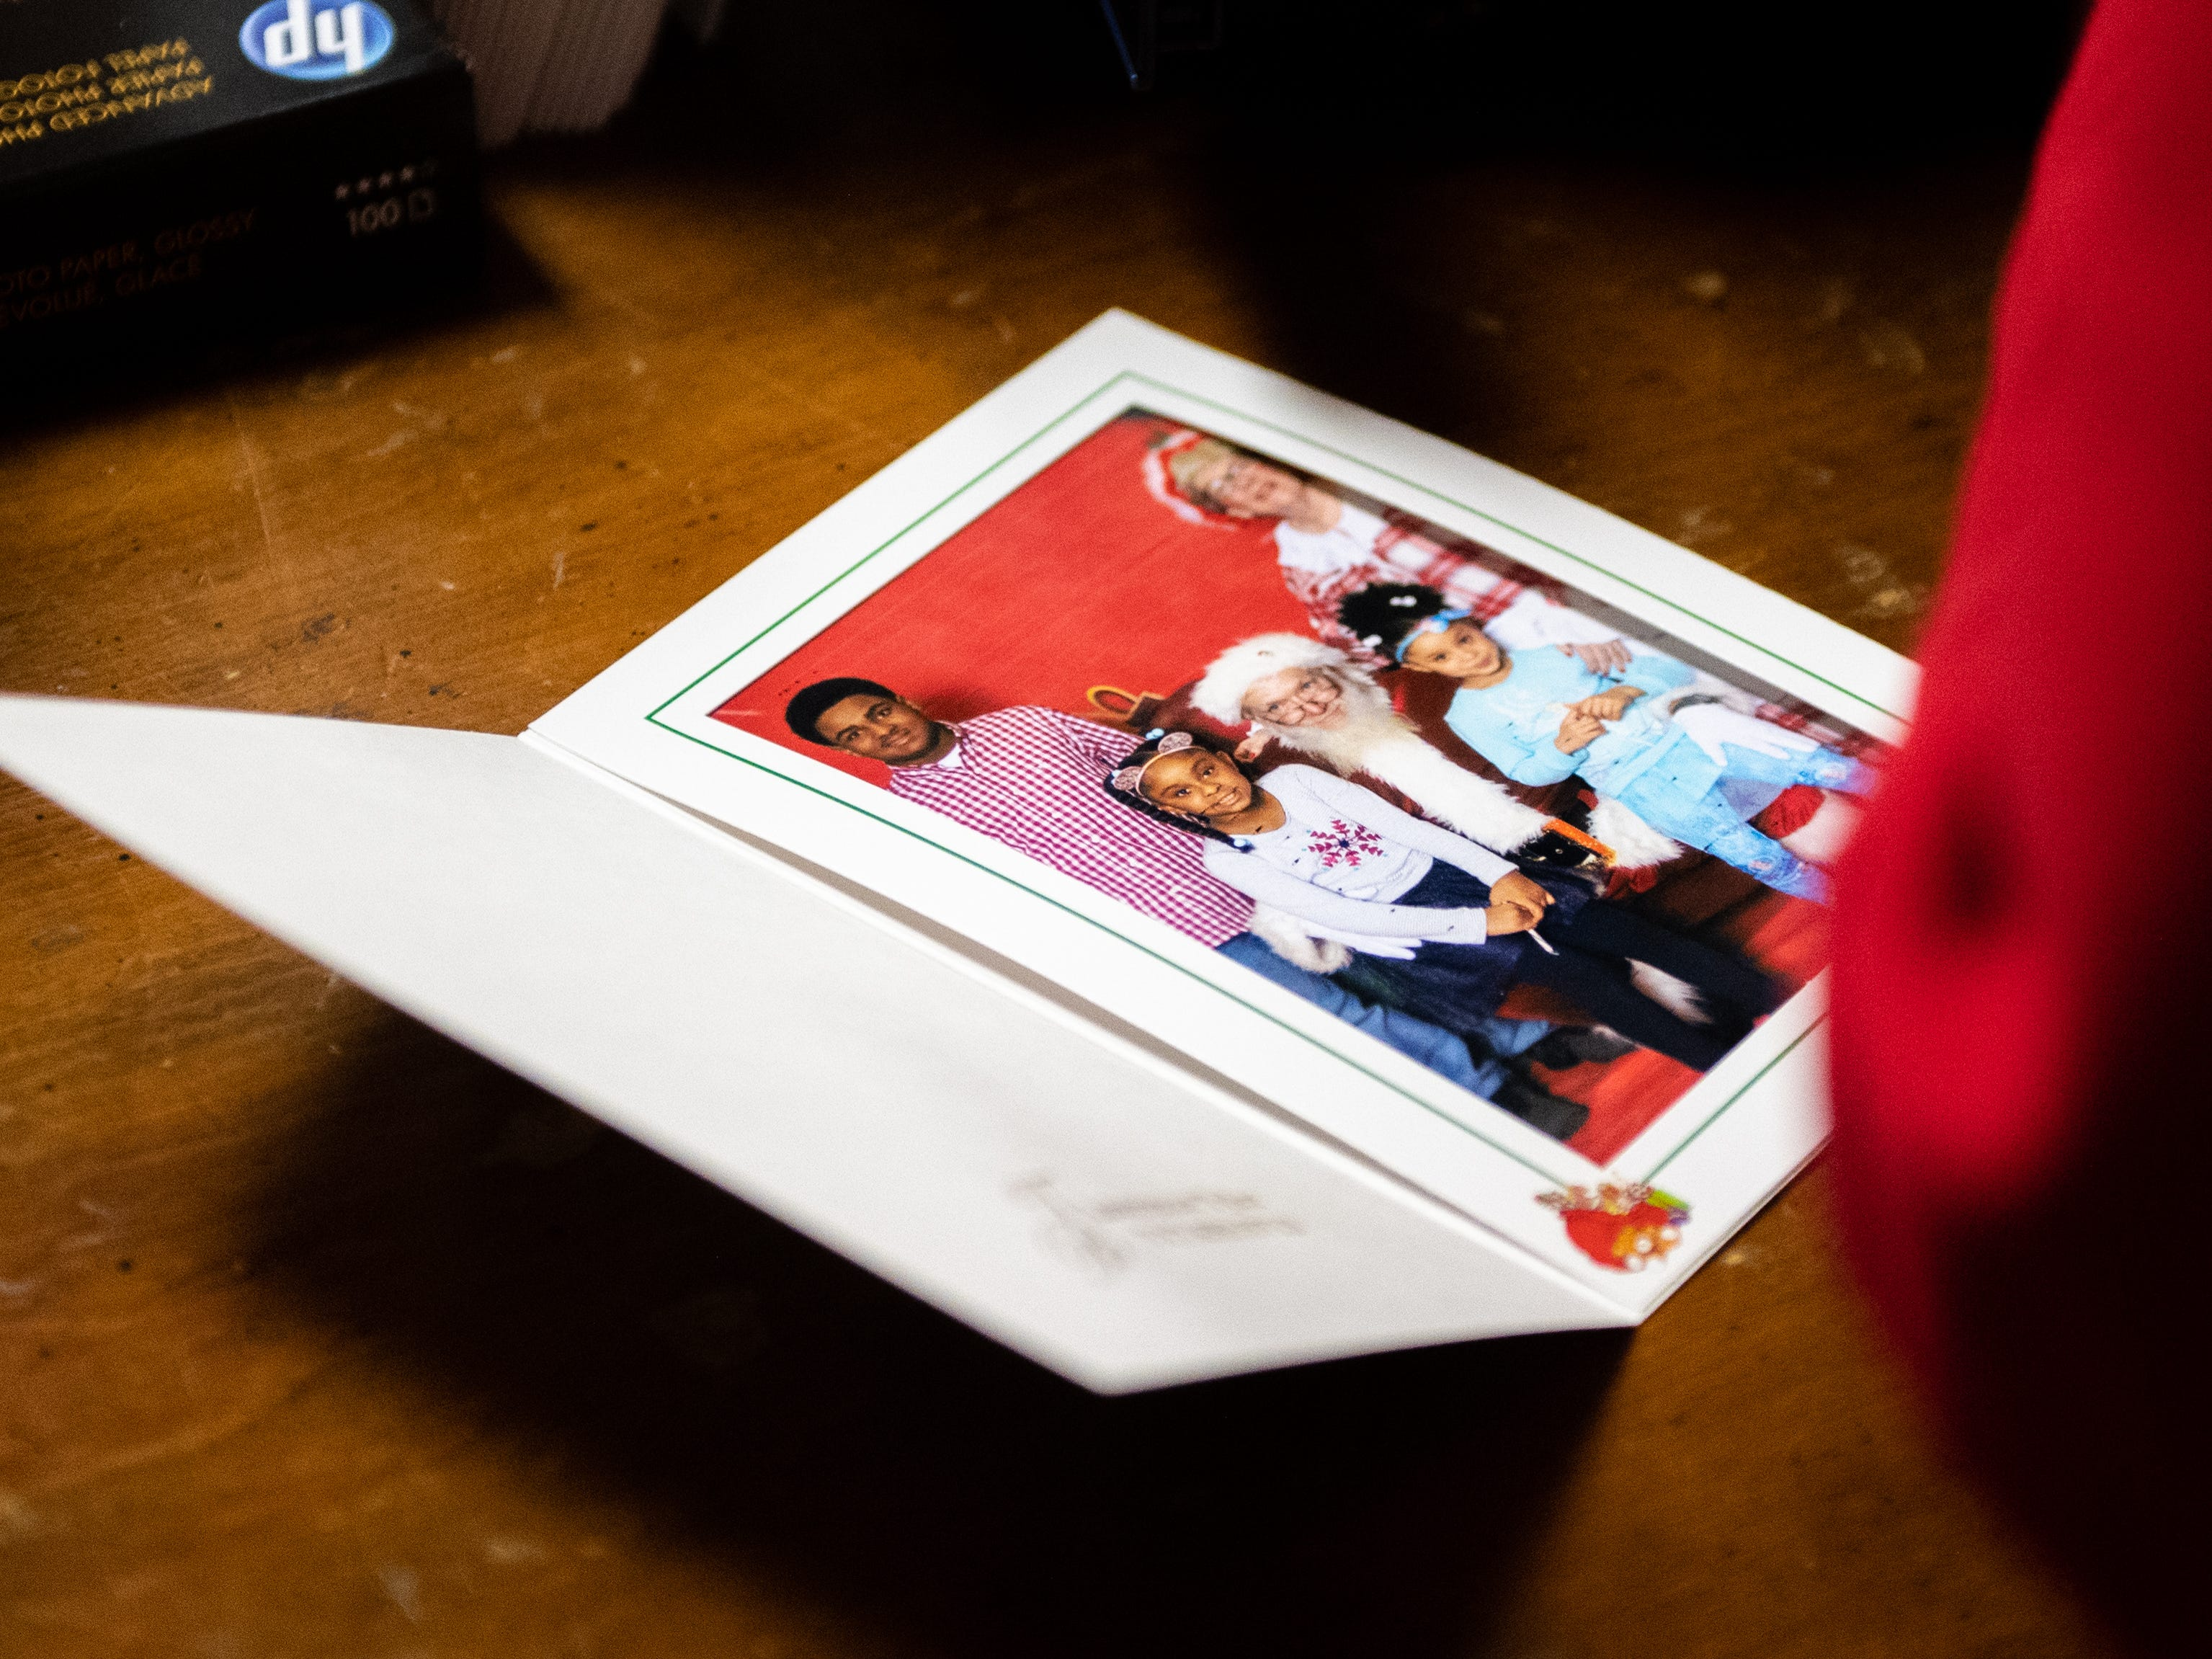 Once the picture is taken, the images are printed out and given to families within minutes during the Annual Evening with Santa, December 13, 2018.